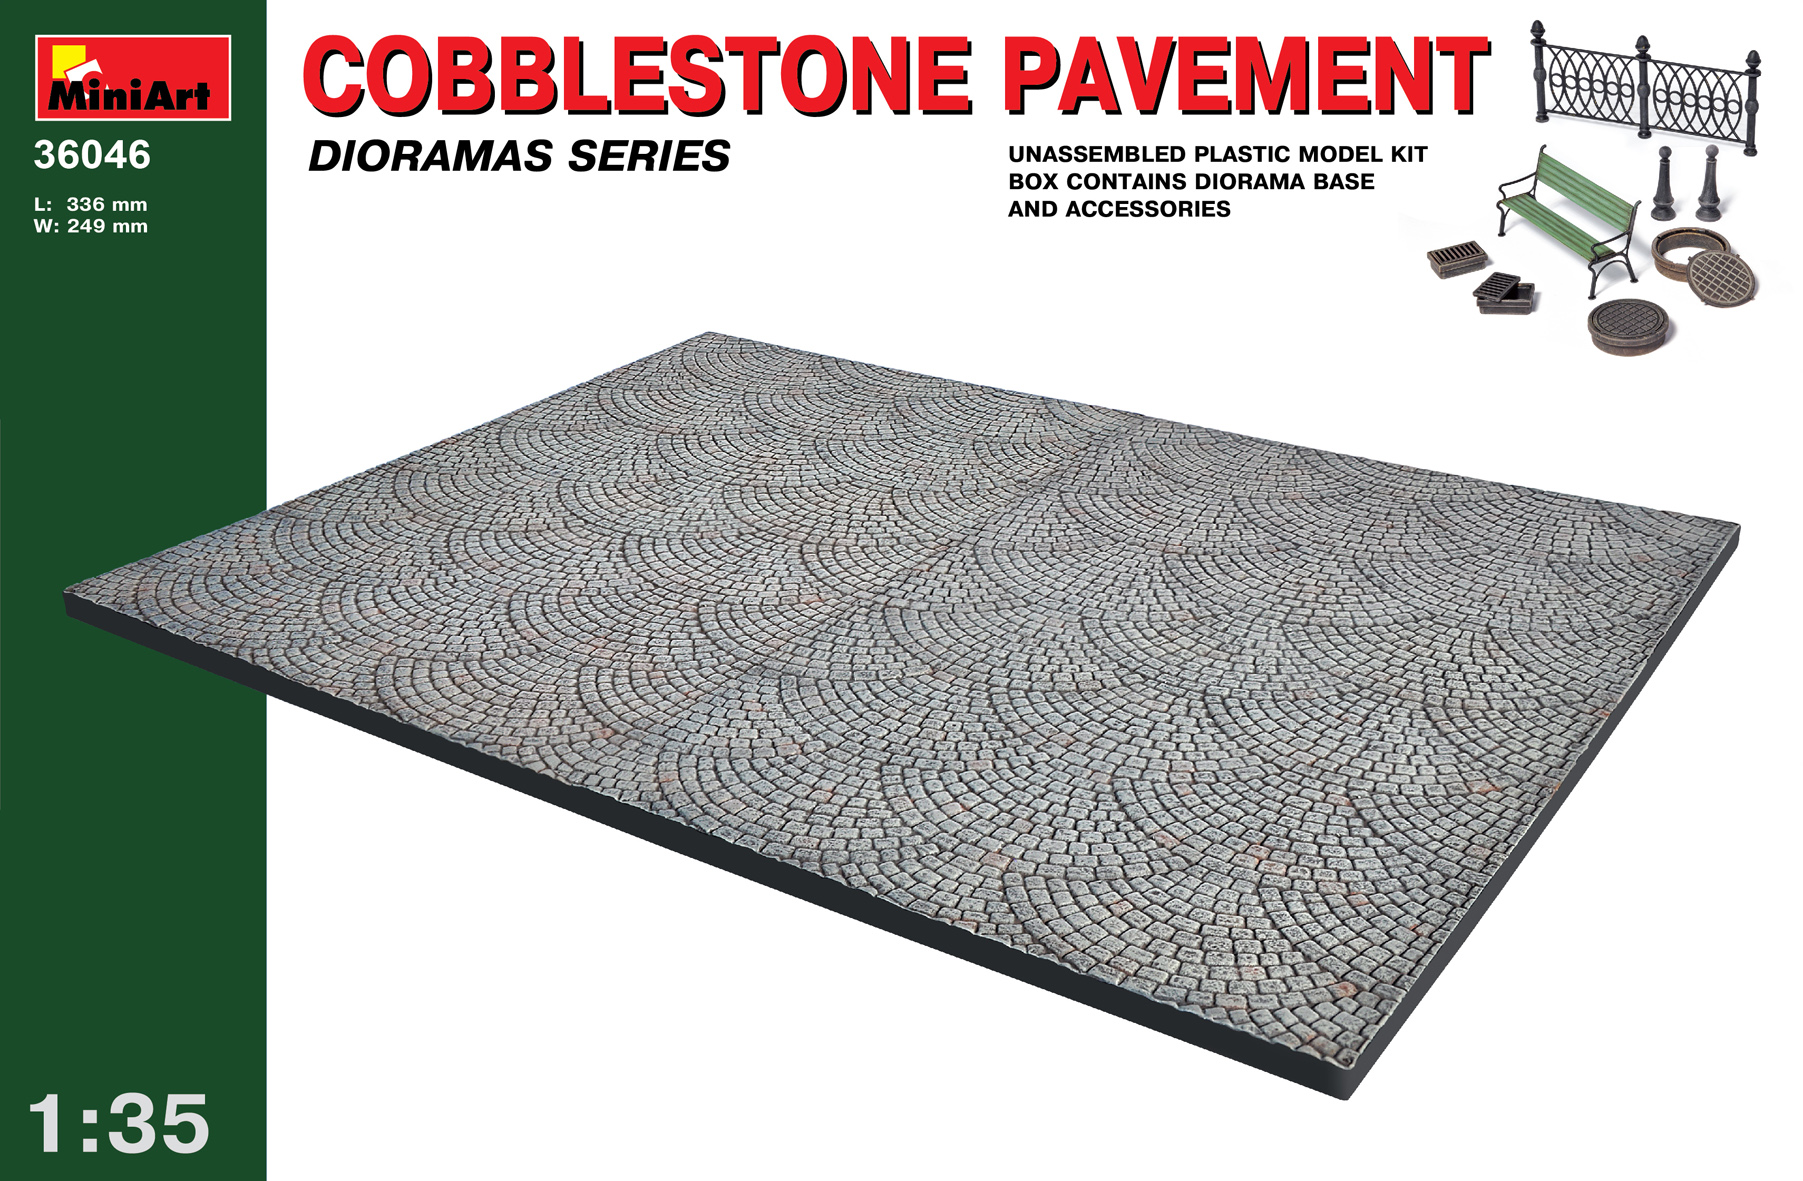 36046 COBBLESTONE PAVEMENT